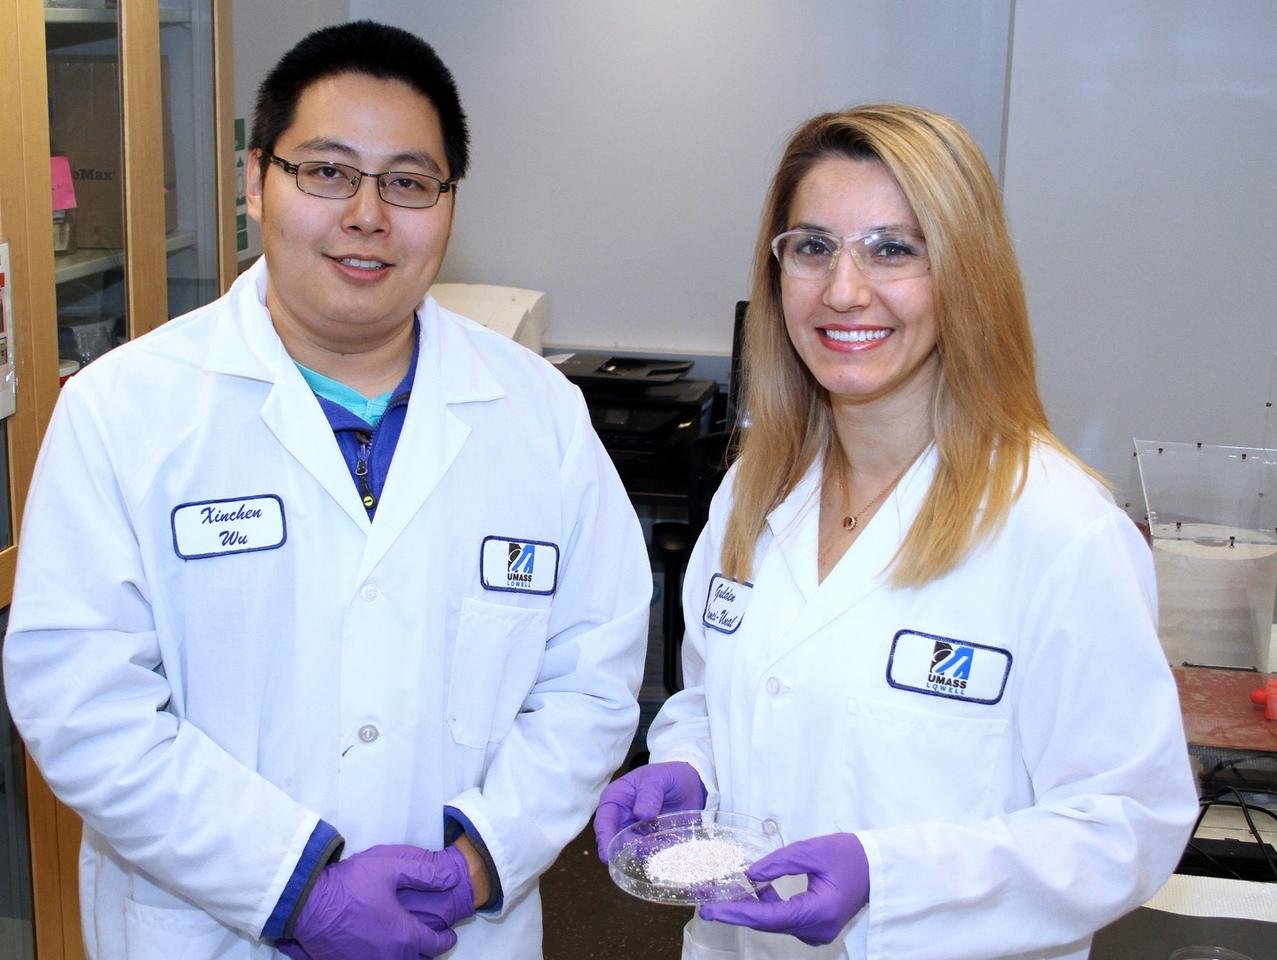 Asst. Prof. Gulden Camci-Unal (right) with Biomedical Engineering and Biotechnology Ph.D student Xinchen Wu